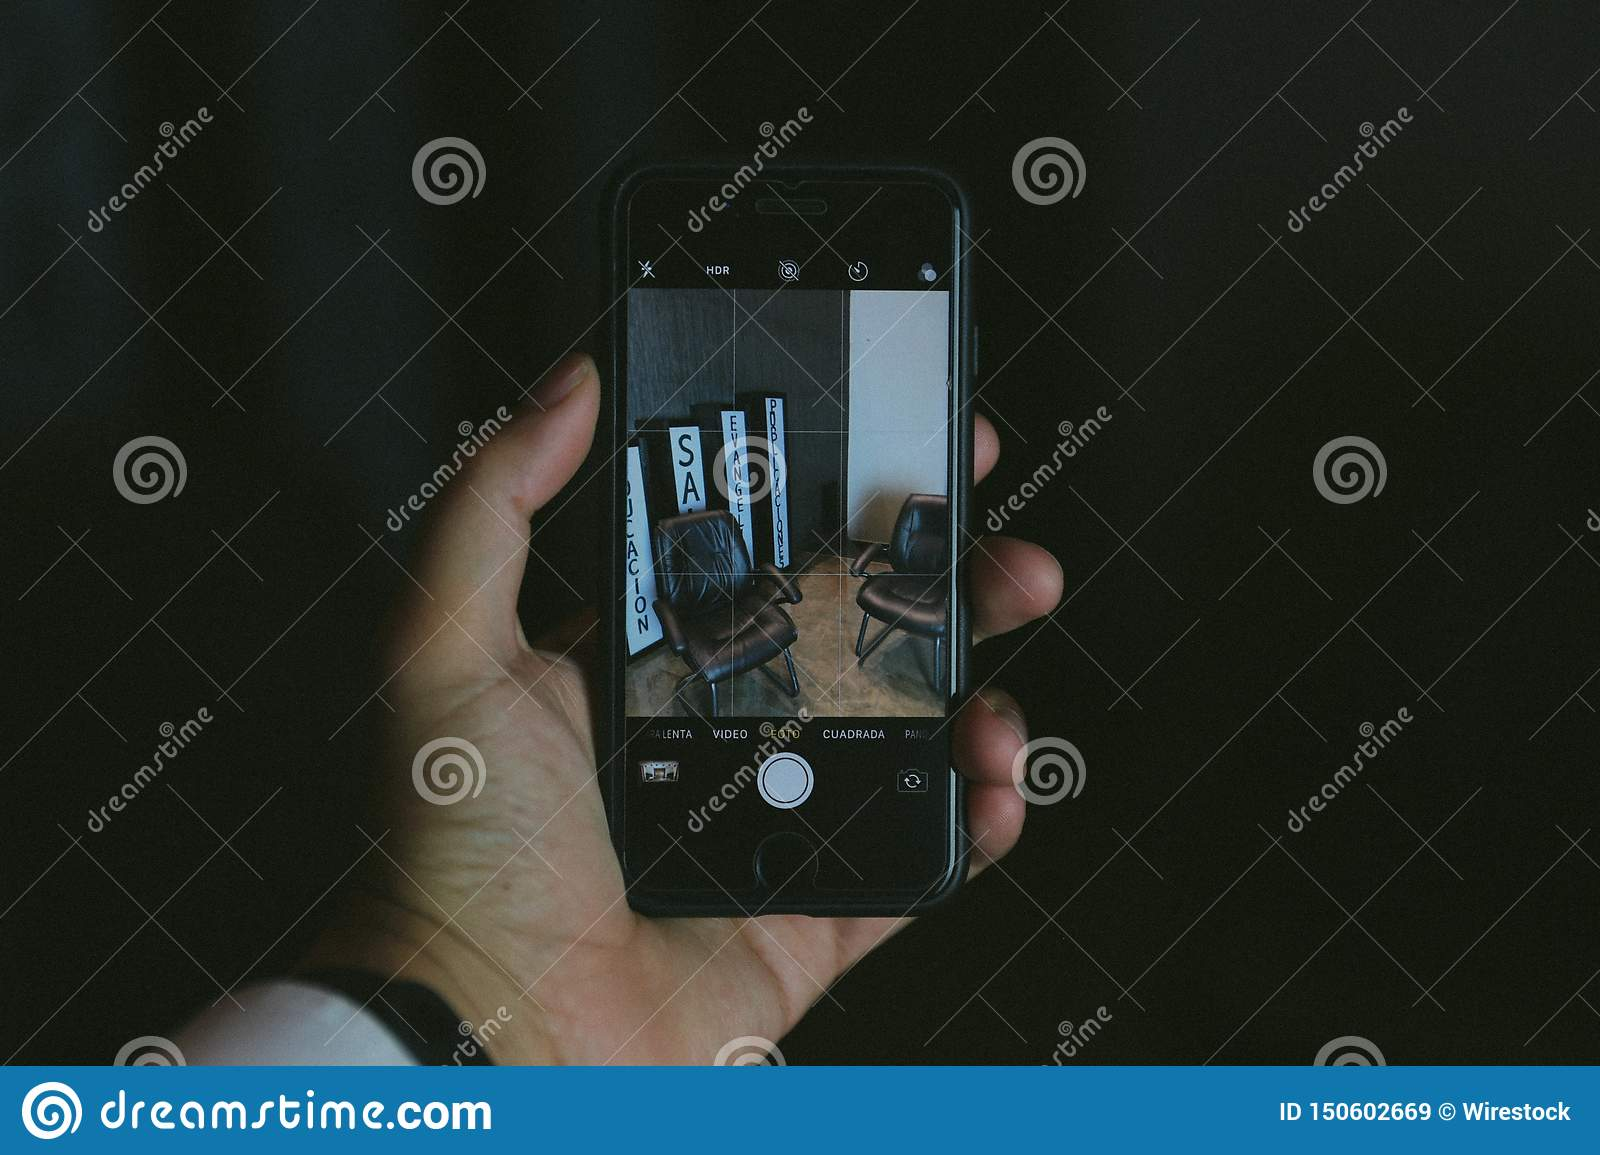 Hand holding a smart phone in a camera mode shooting some posters